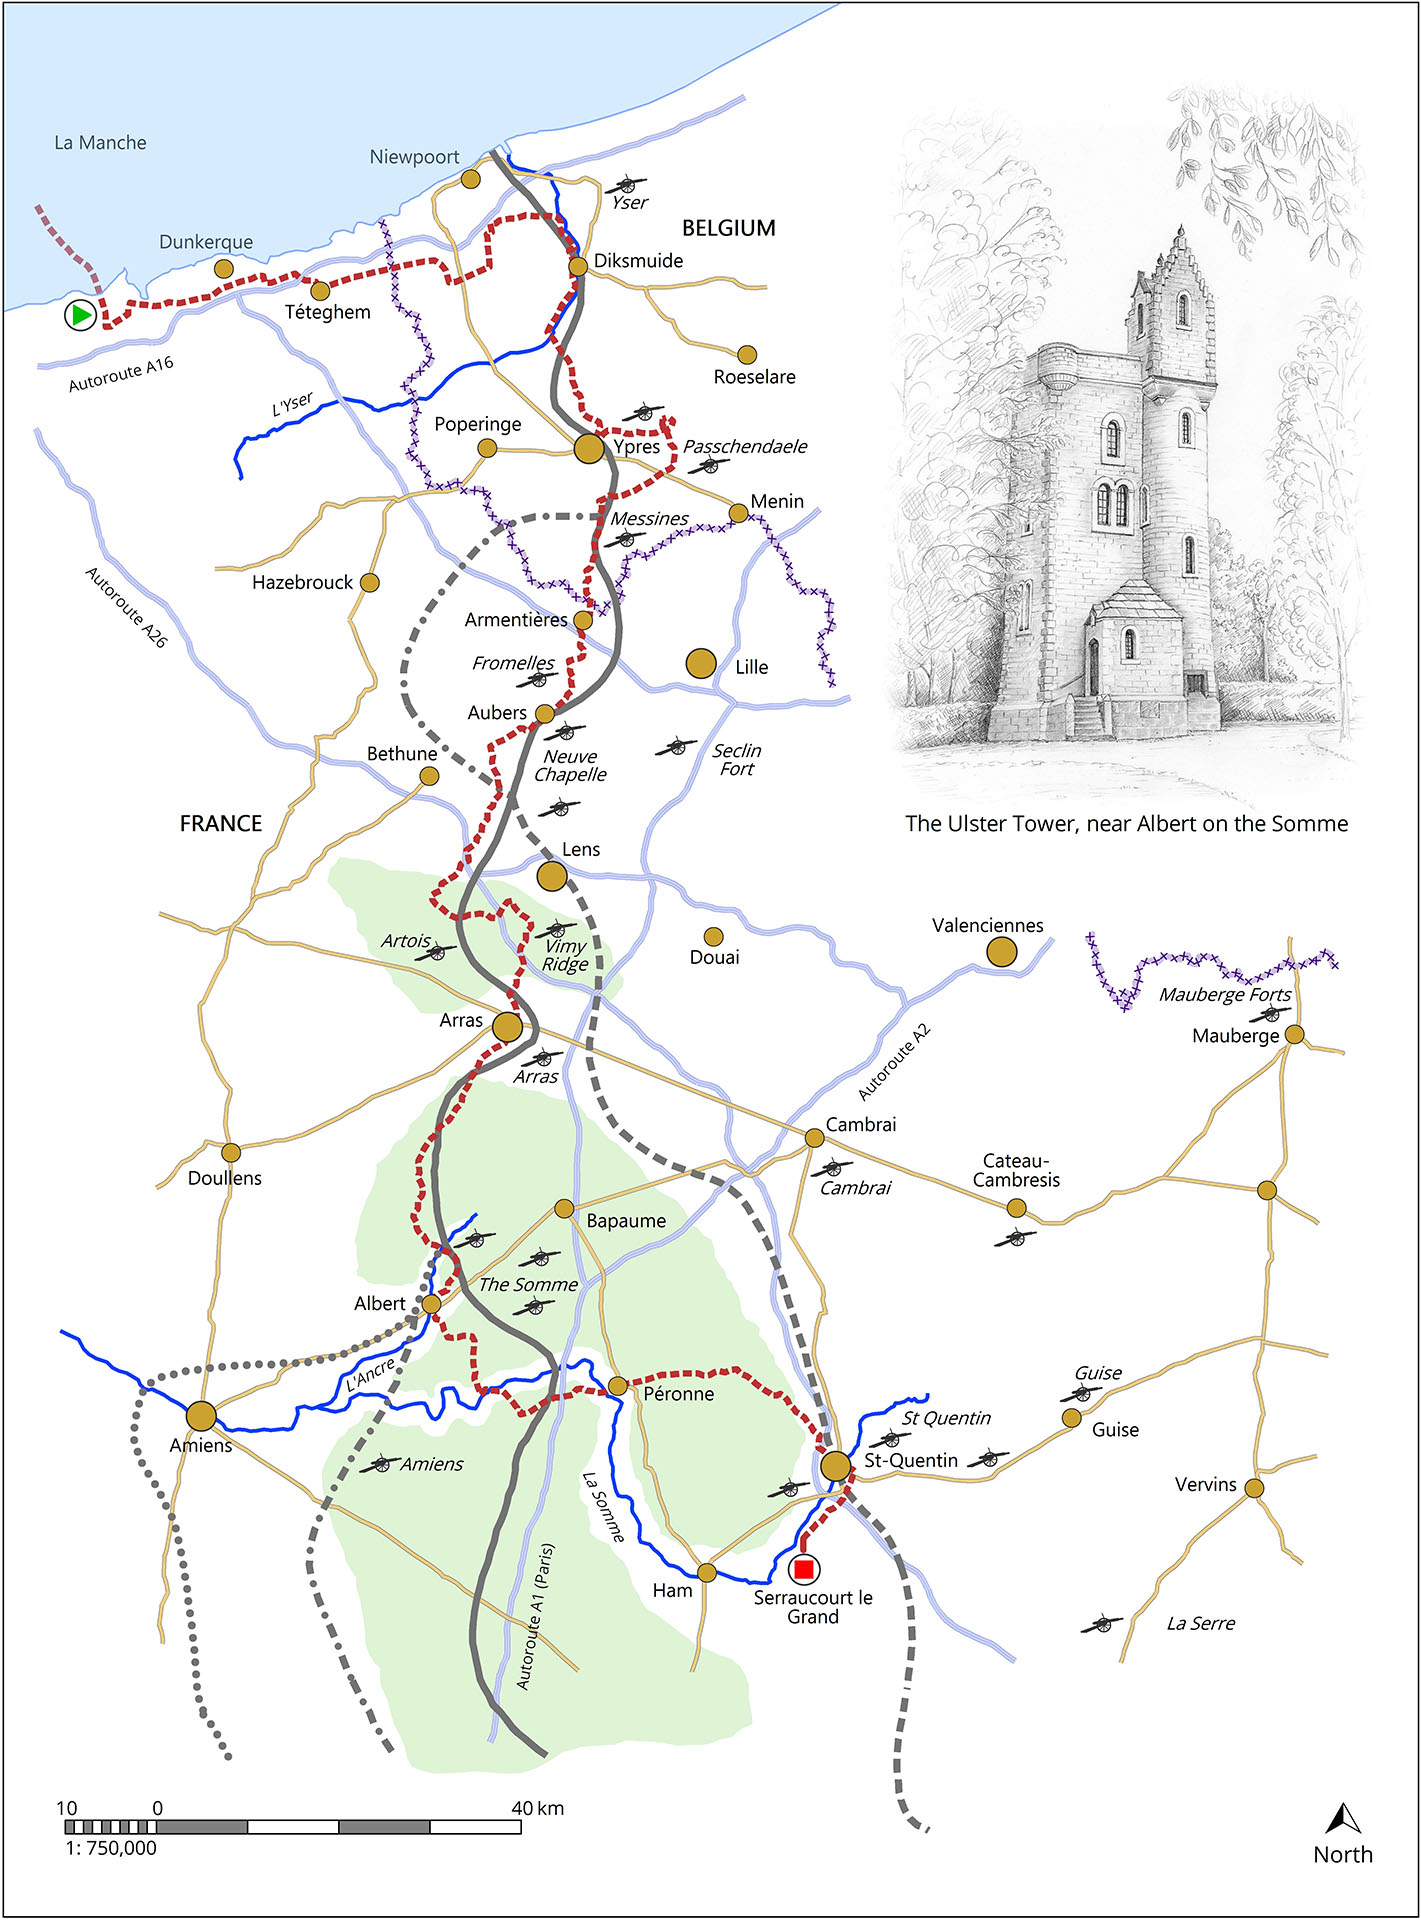 The first section of my ride along the Western Front, covering Flanders, Passchendaele, Arras and the Somme